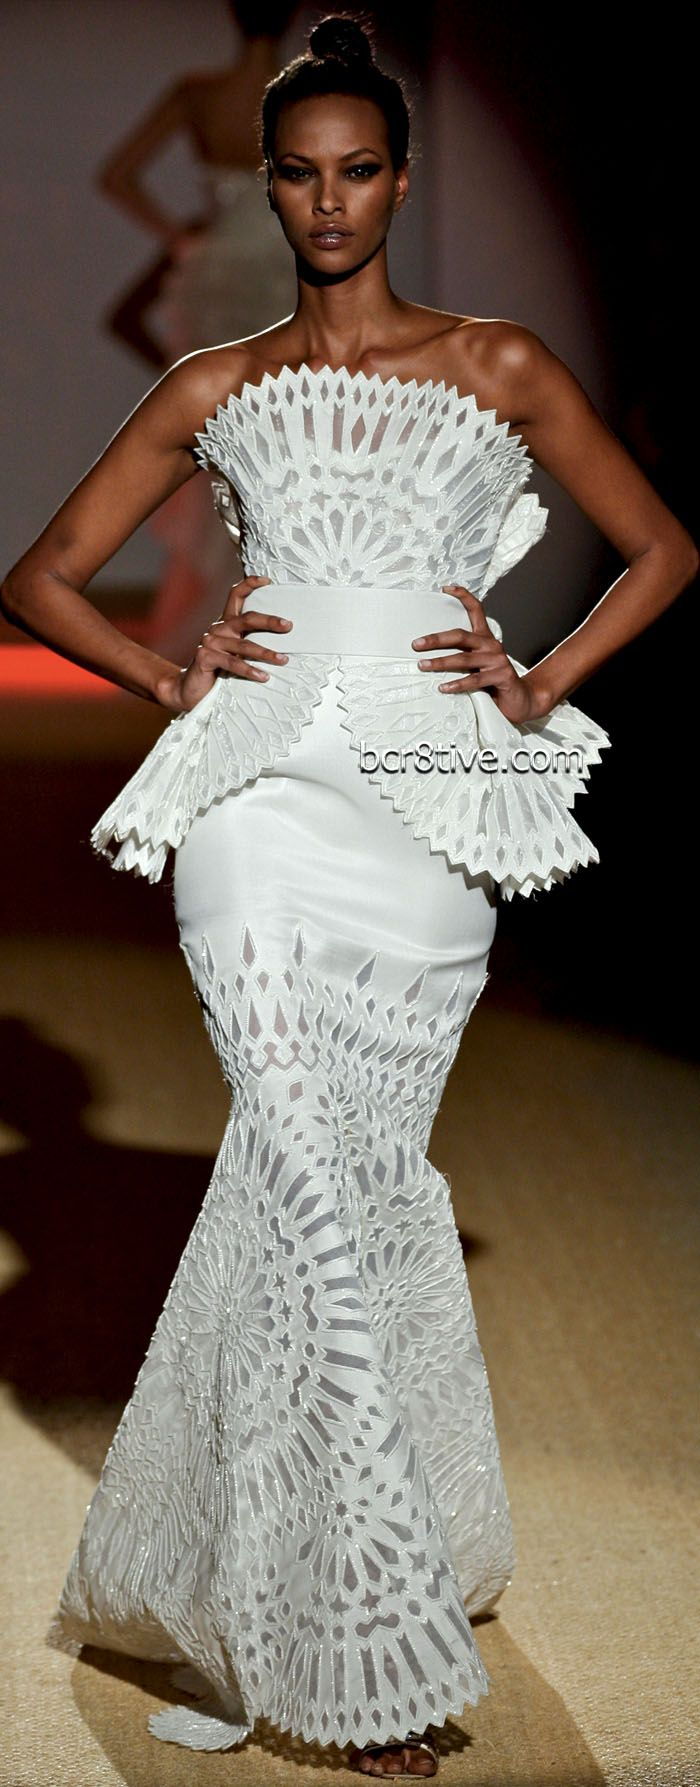 Fausto sarli couture this is fashion pinterest for Haute couture gowns